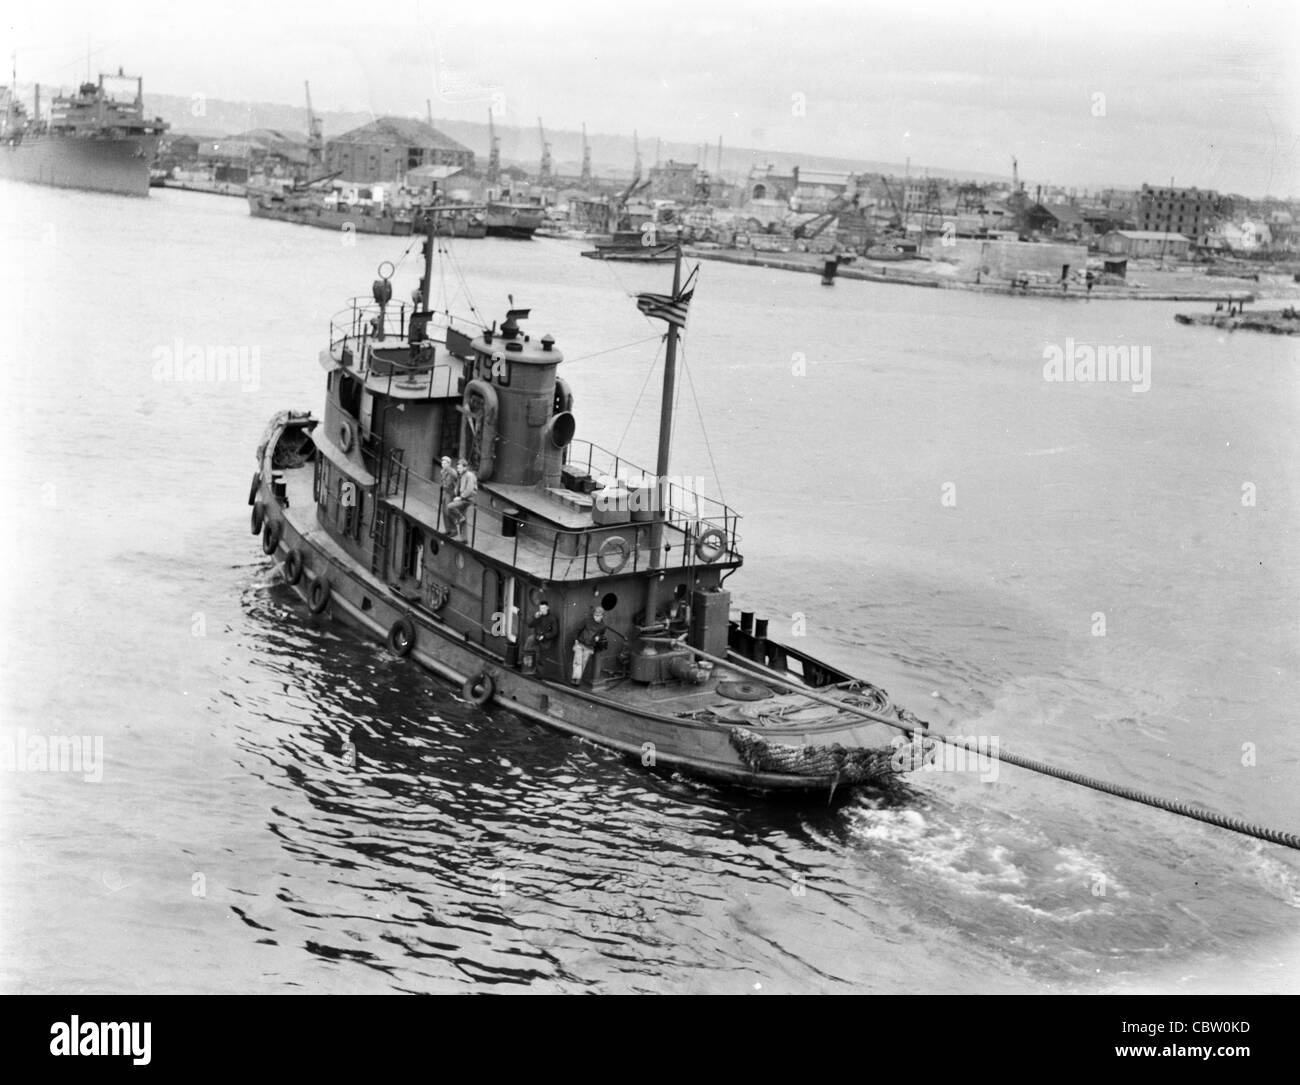 Tug Boat Pulling Ship In Waters Near England During WWII